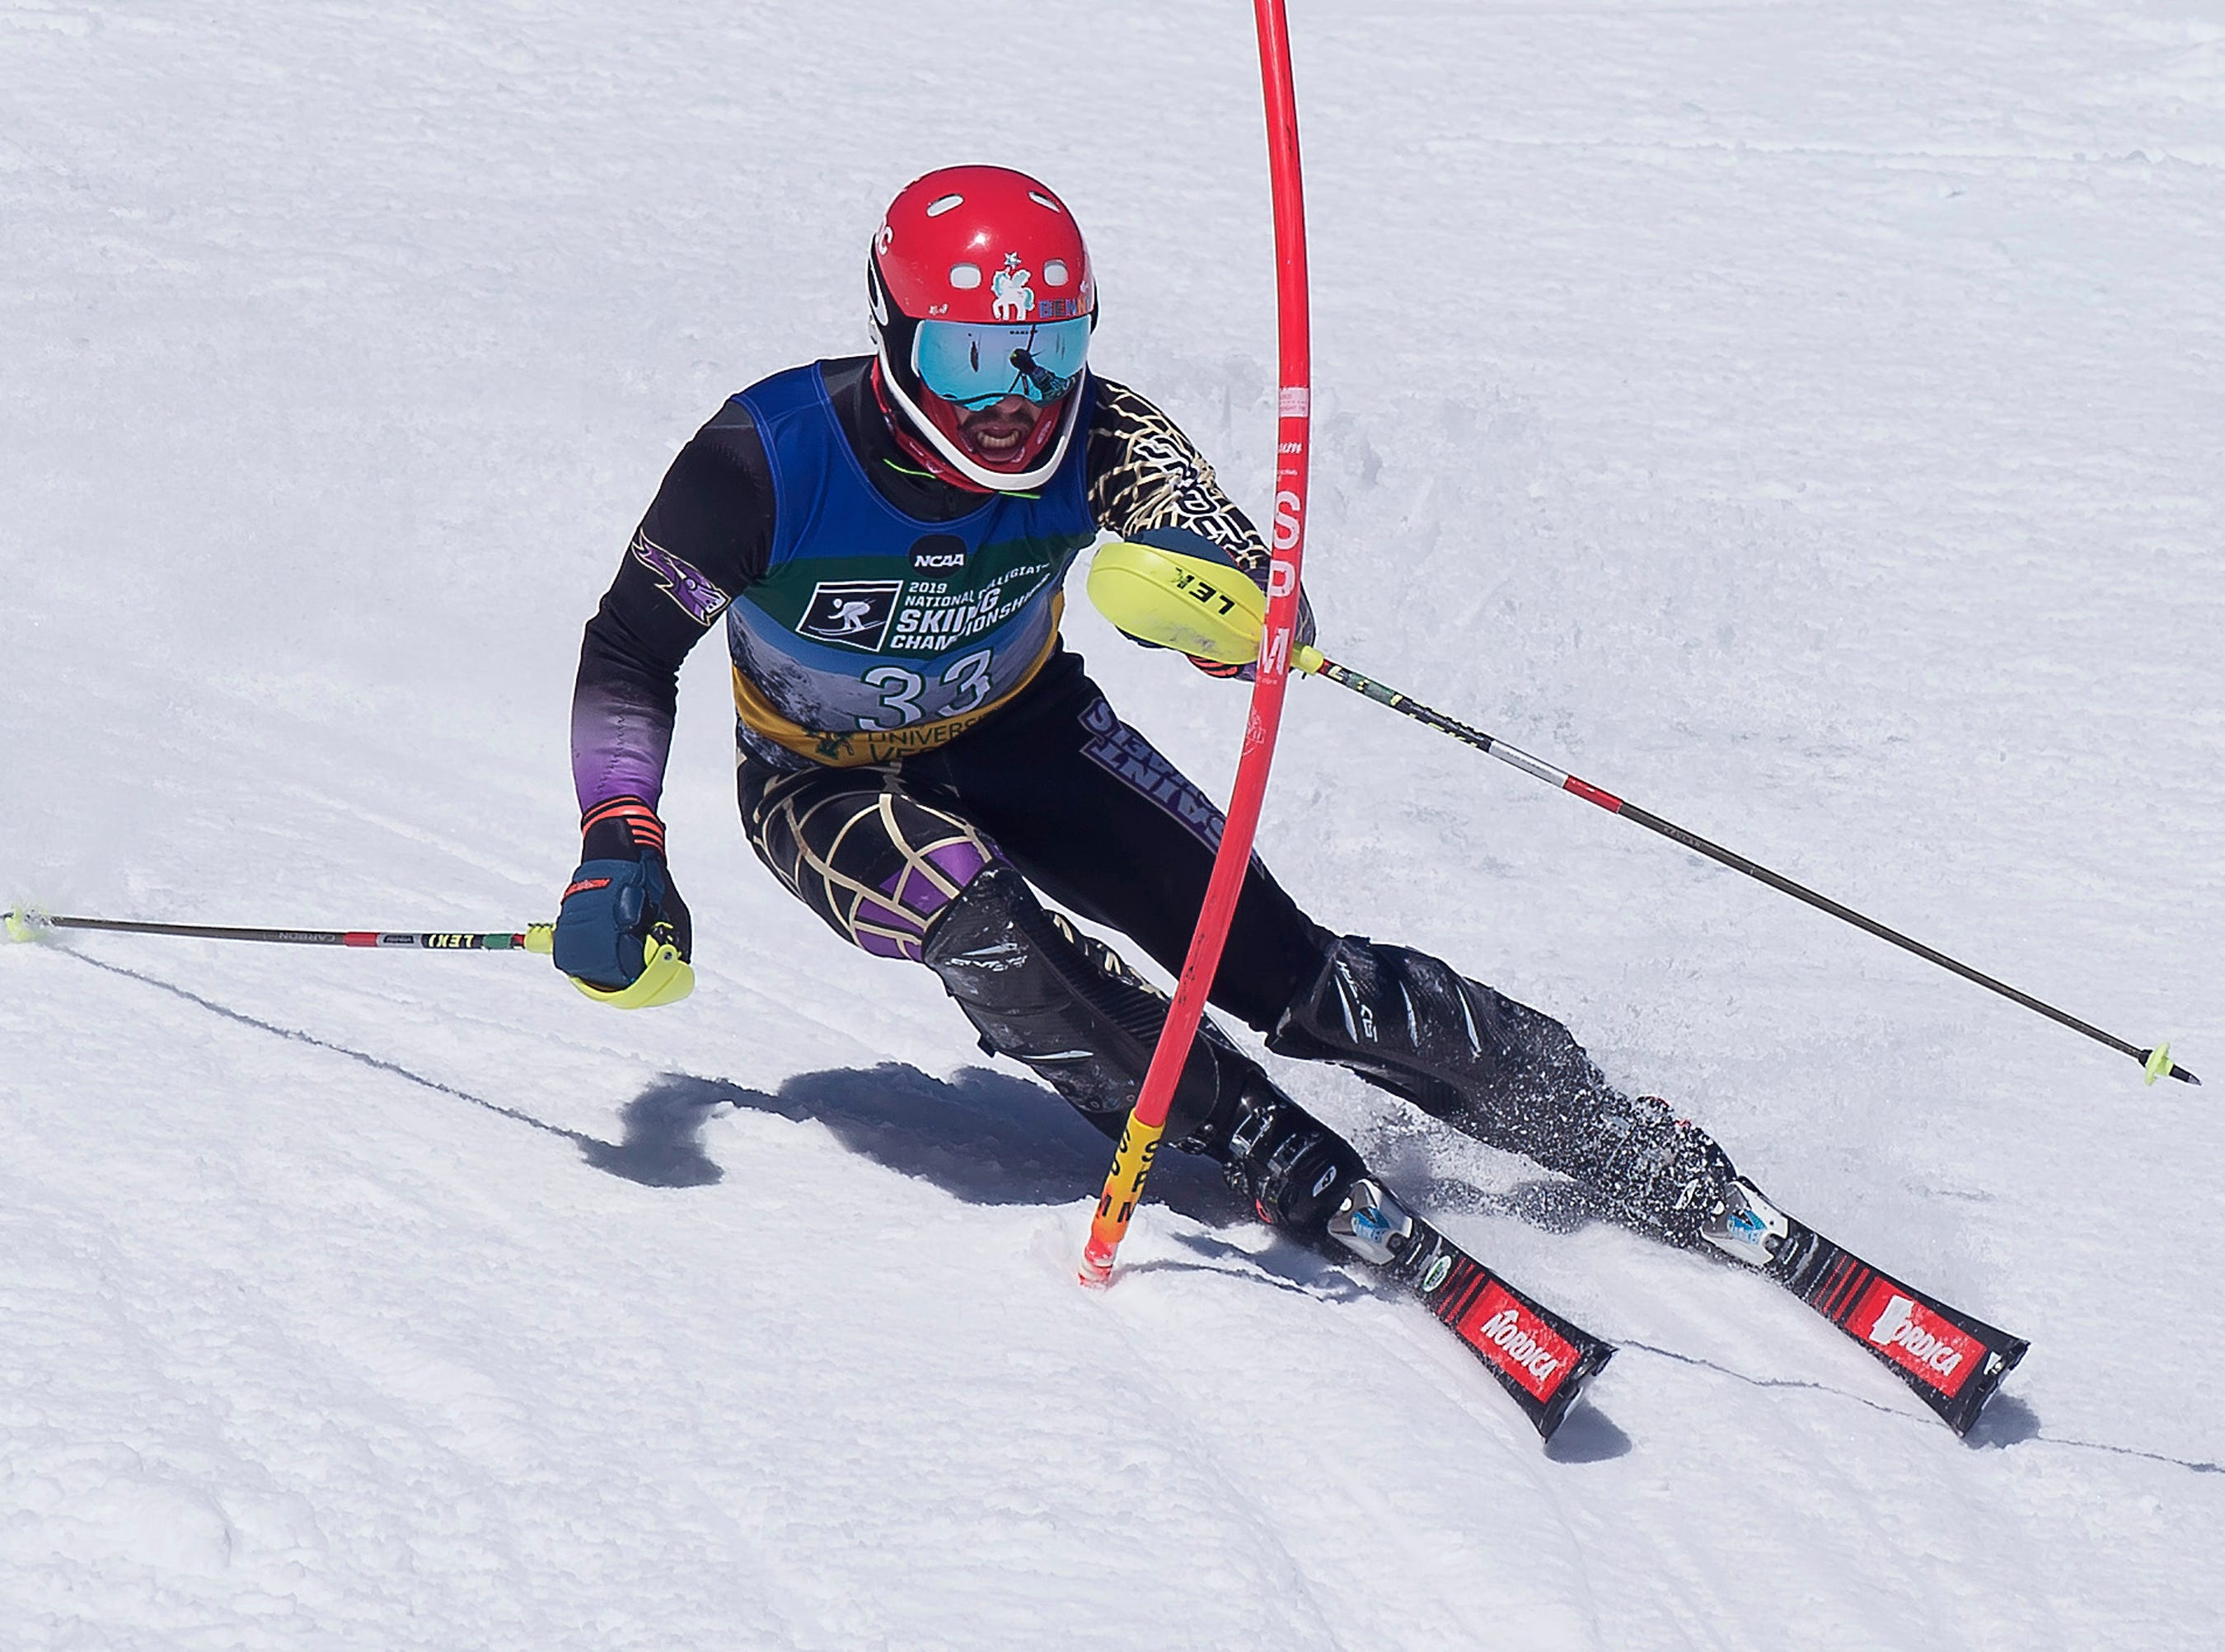 St. Michael's College skier Benjamin Throm clears a gate at the NCAA slalom championships on Saturday at Stowe Mountain Resort.